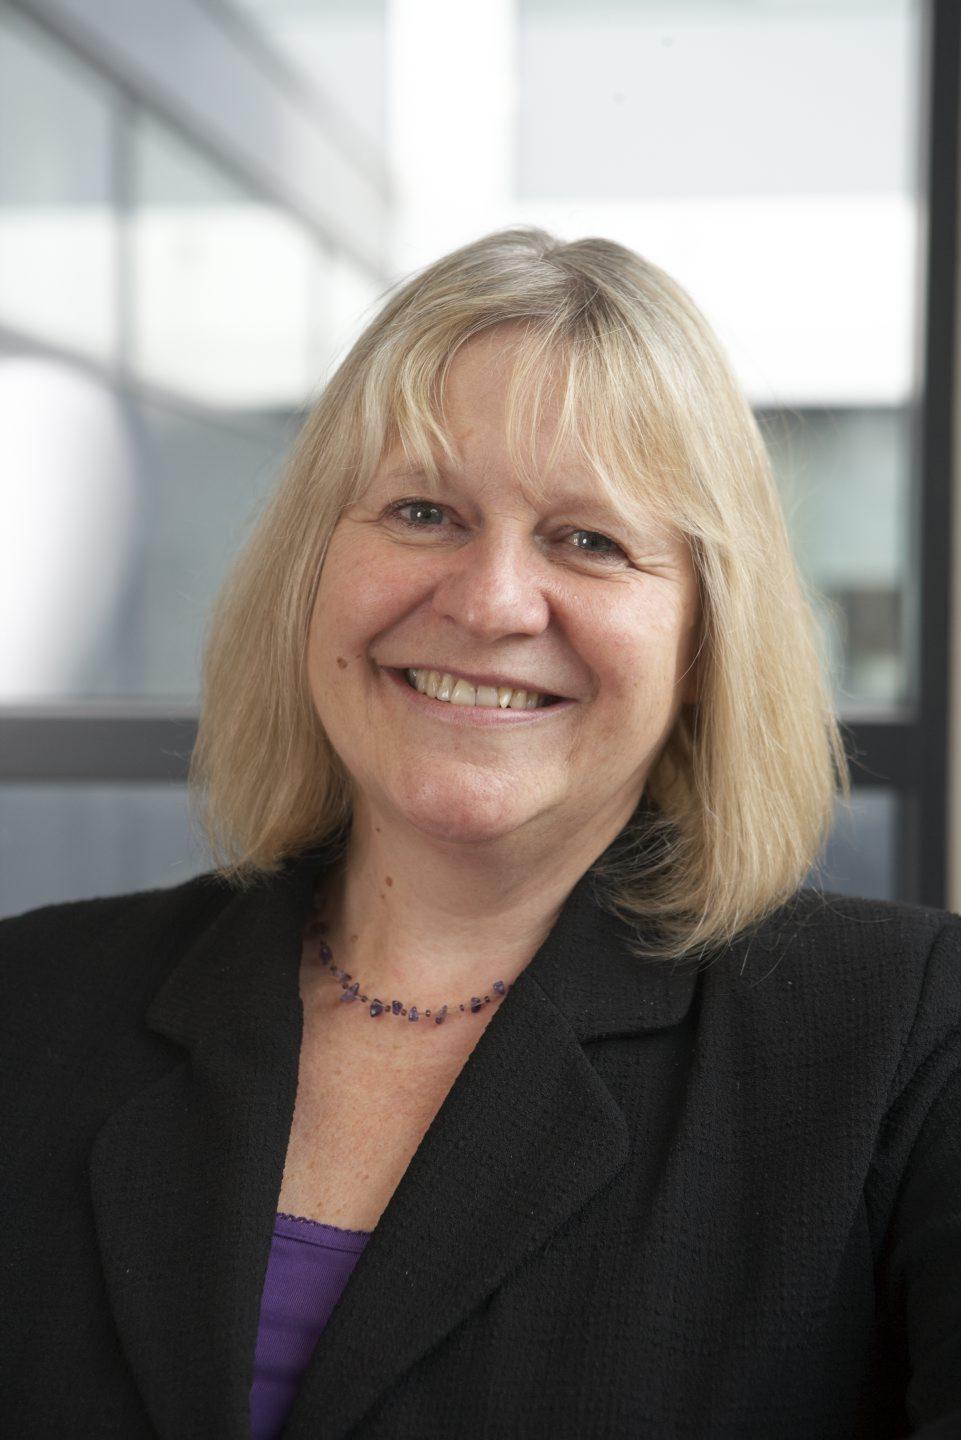 Jo Verran   Jo is Emeritus Professor of Microbiology at Manchester Metropolitan University. She headed the Science Communication and Public Engagement activities at the University, and practices cross-disciplinary collaborations to enhance audience participation and engagement.